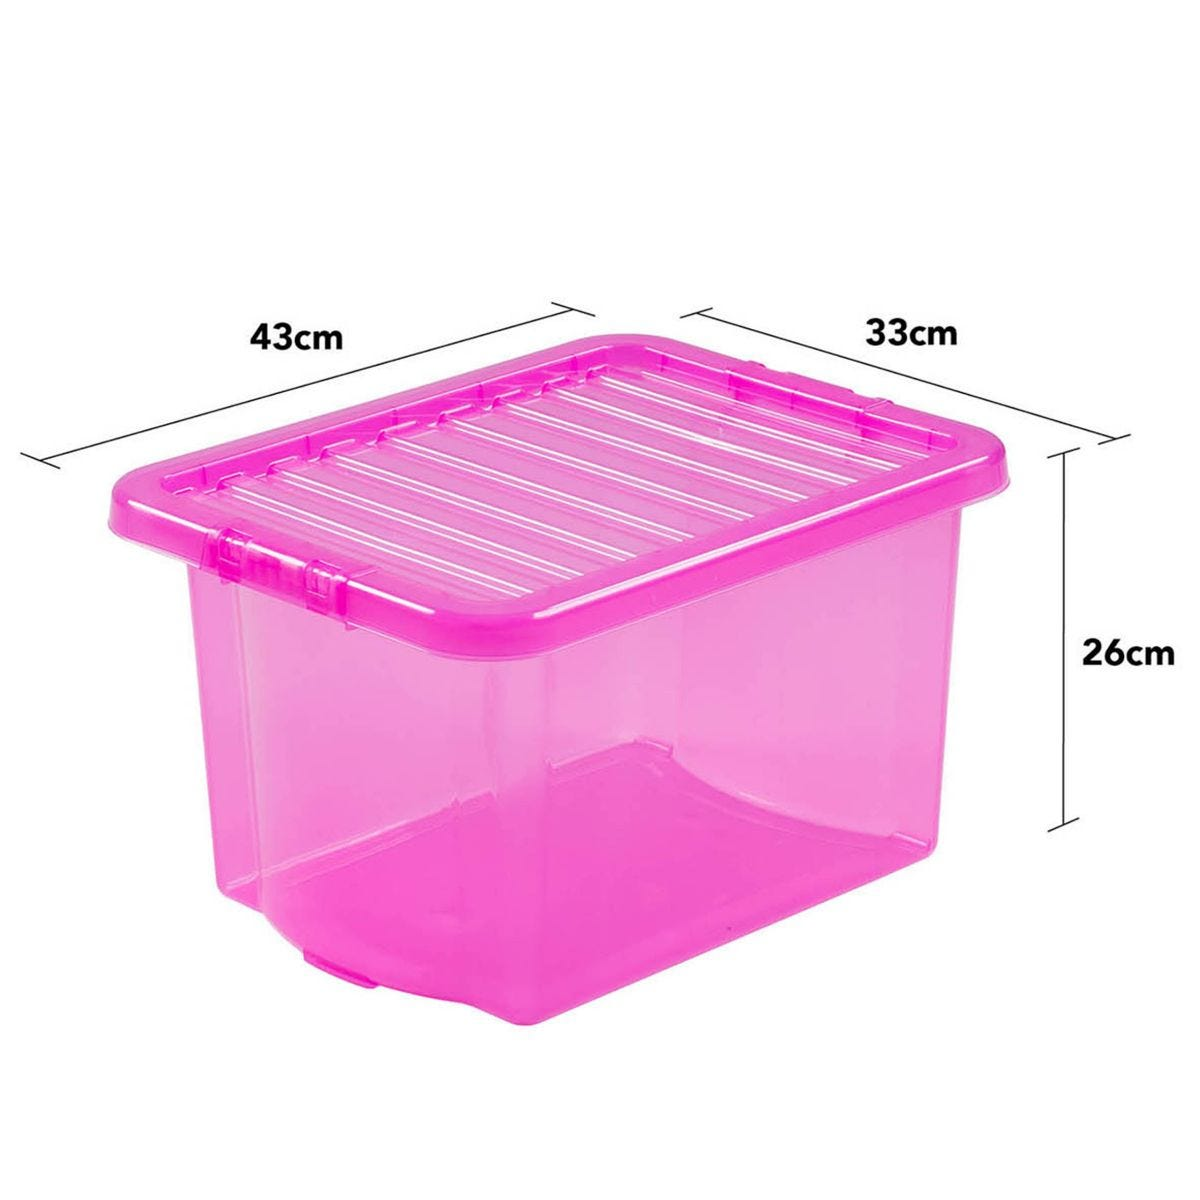 Wham Crystal Pink Storage Box with Lid 24L - Set of 5